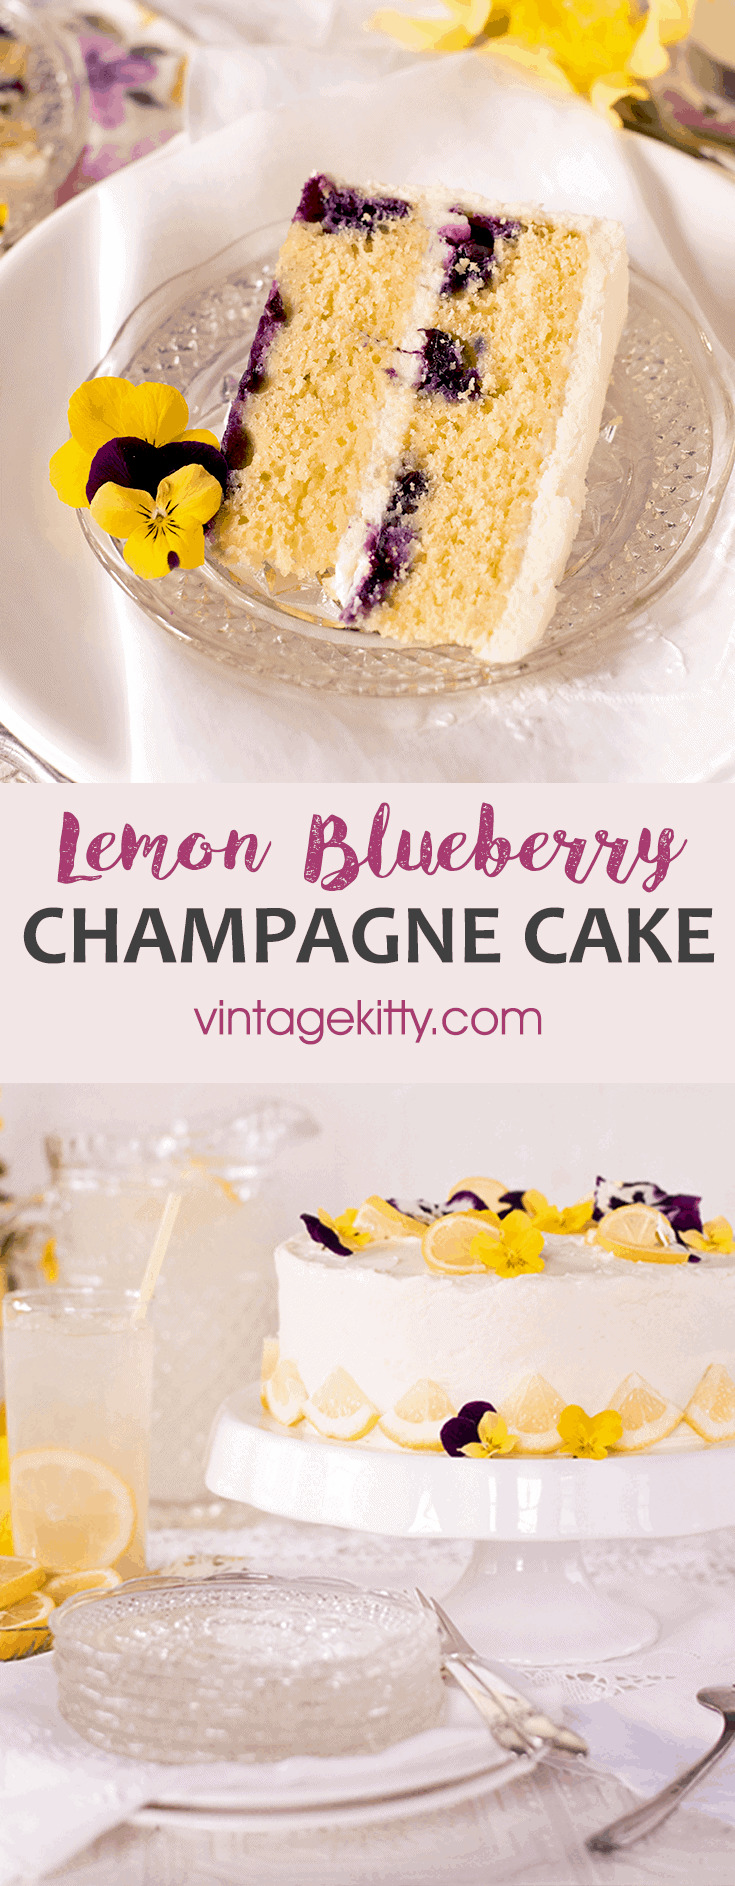 Pin Lemon Blueberry Cake  - Champagne Lemon Blueberry Cake with Cream Cheese Frosting